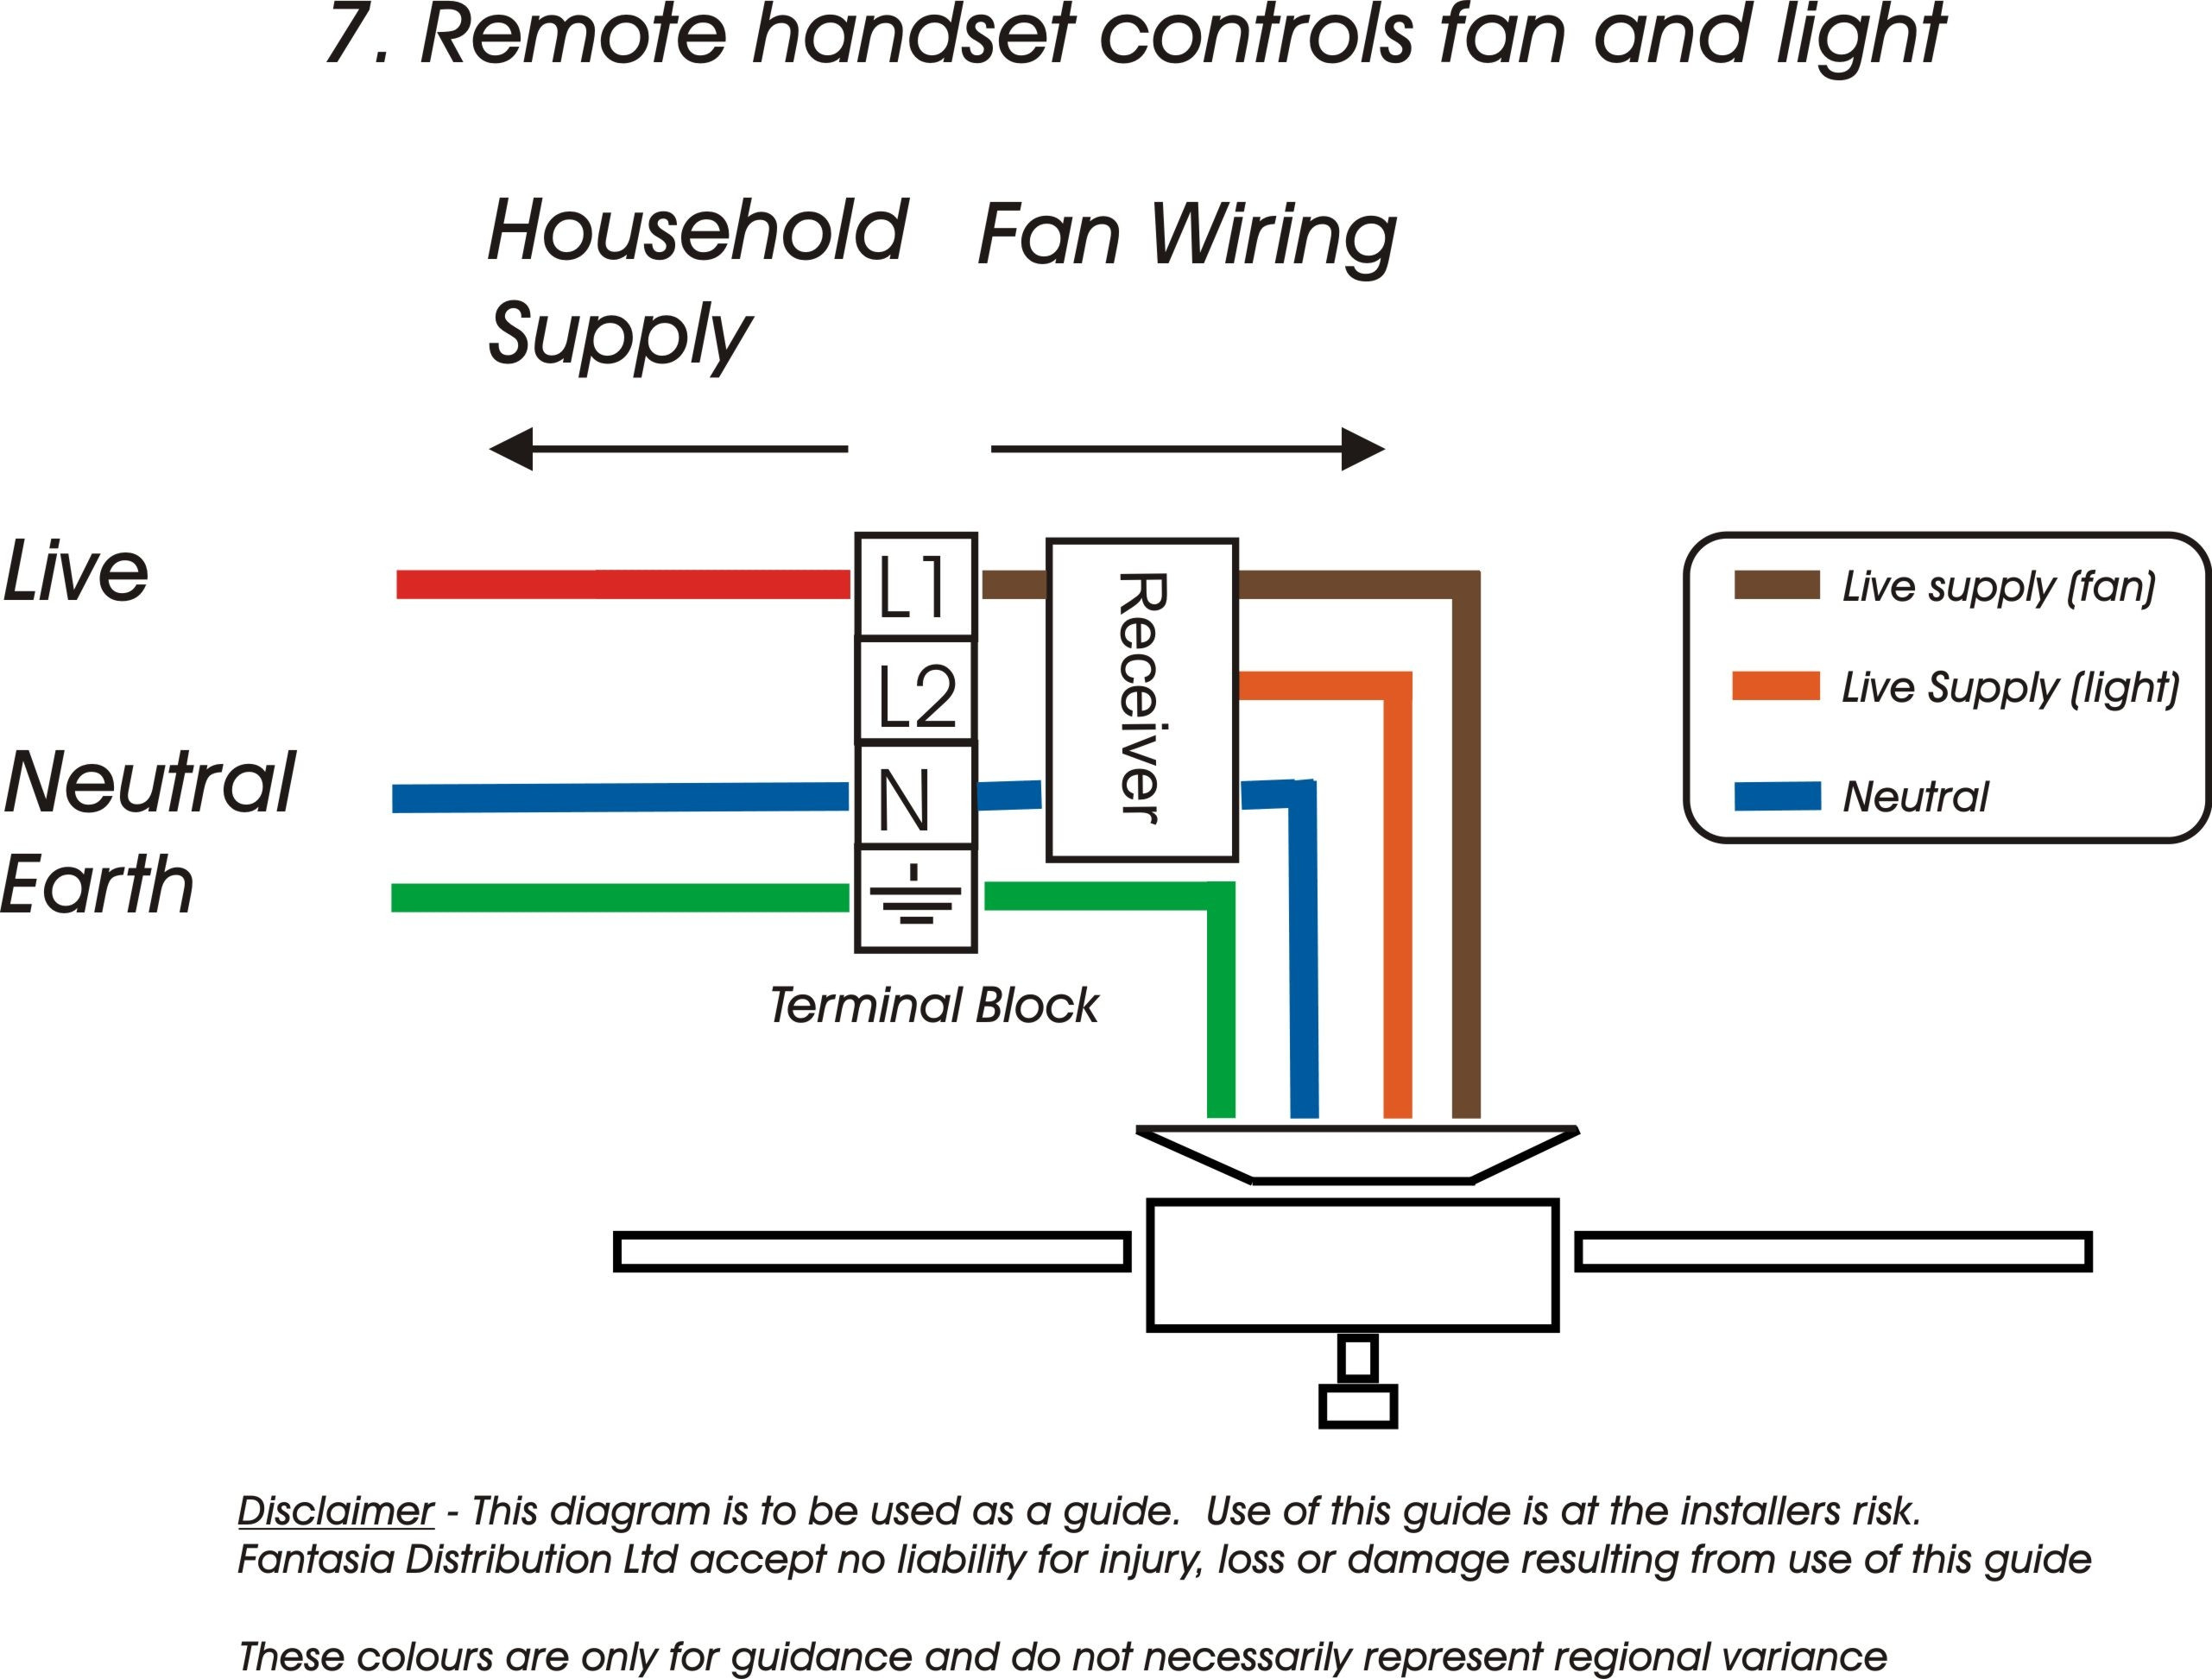 hunter fan wiring diagram remote control Download-Wiring Diagram Fan Relay Switch New Ceiling Fan Wiring Diagram Single Switch 13-m